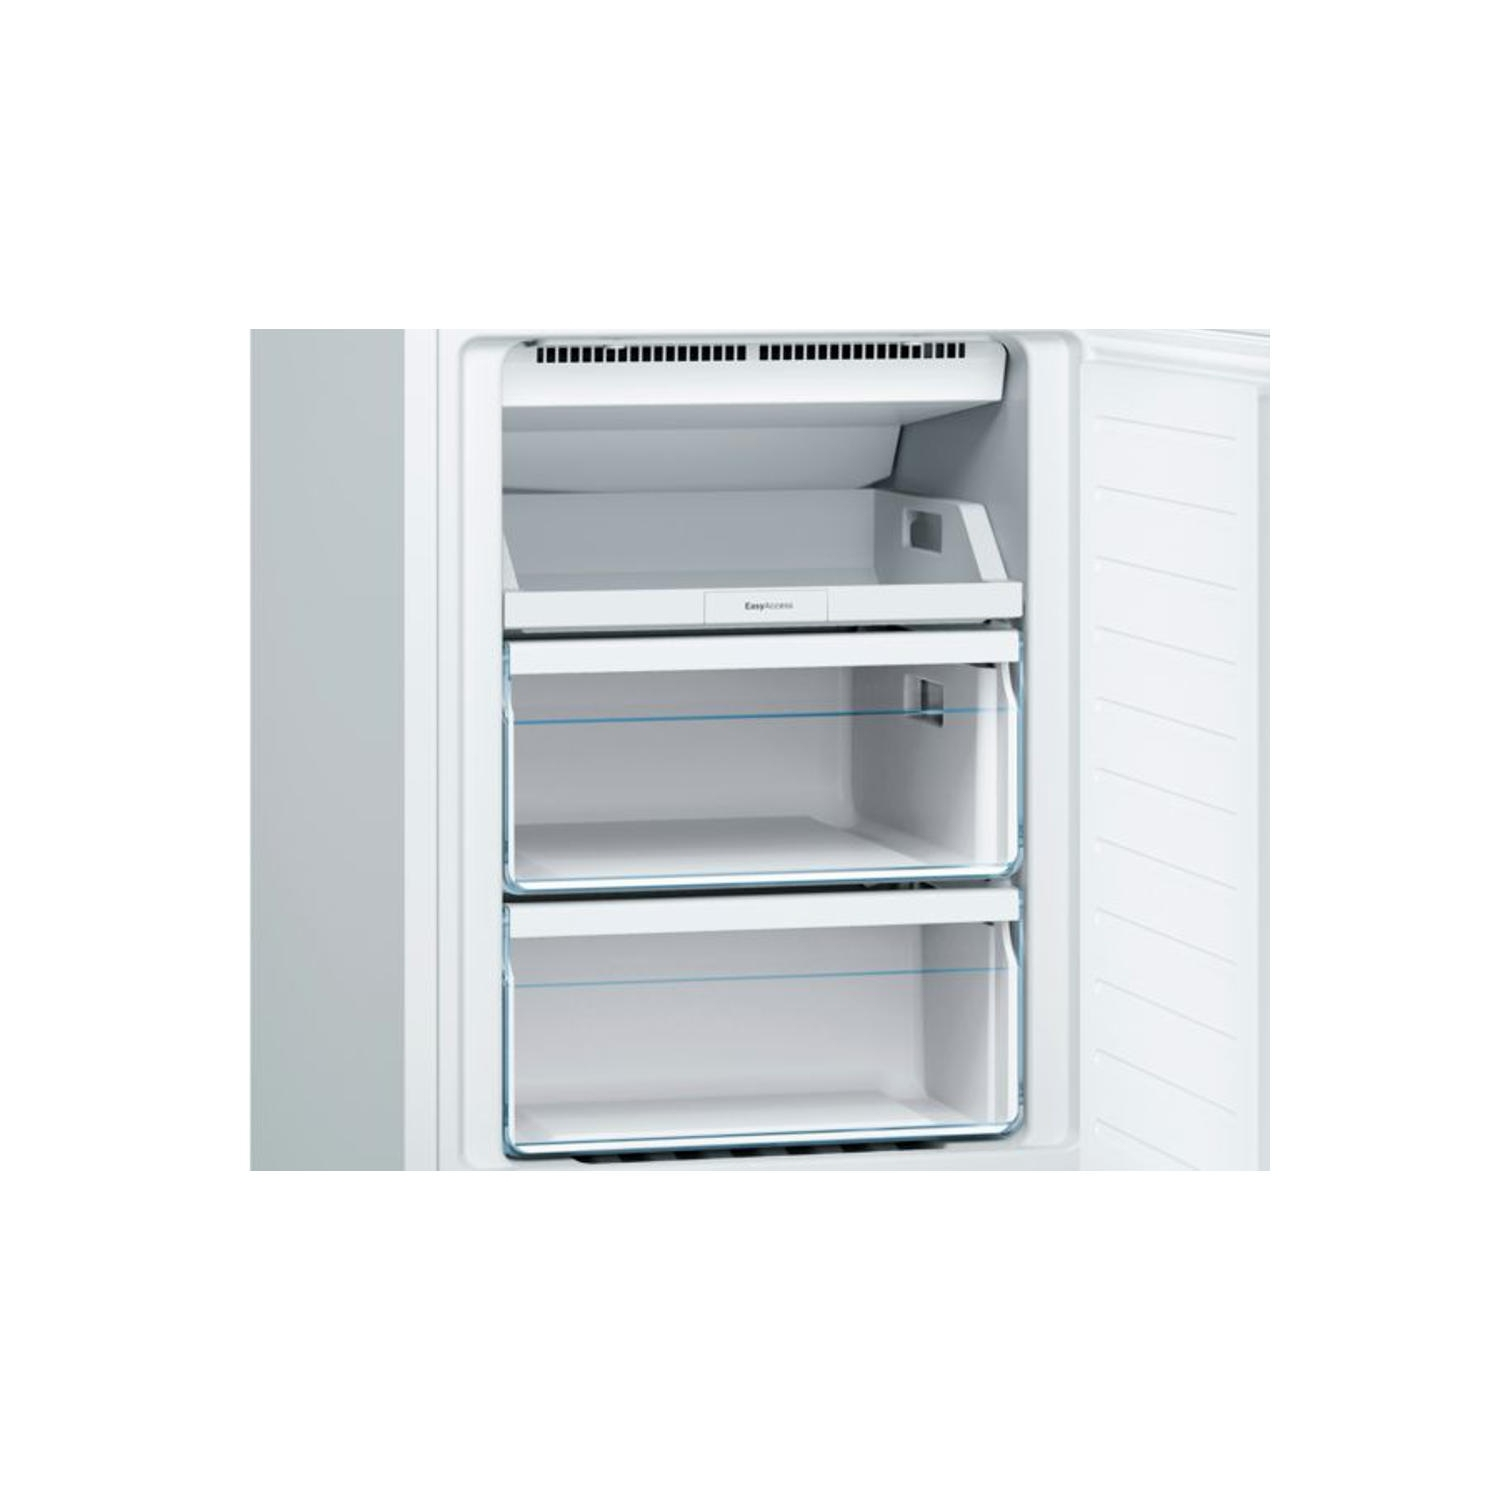 Bosch Frost Free Fridge Freezer - 0